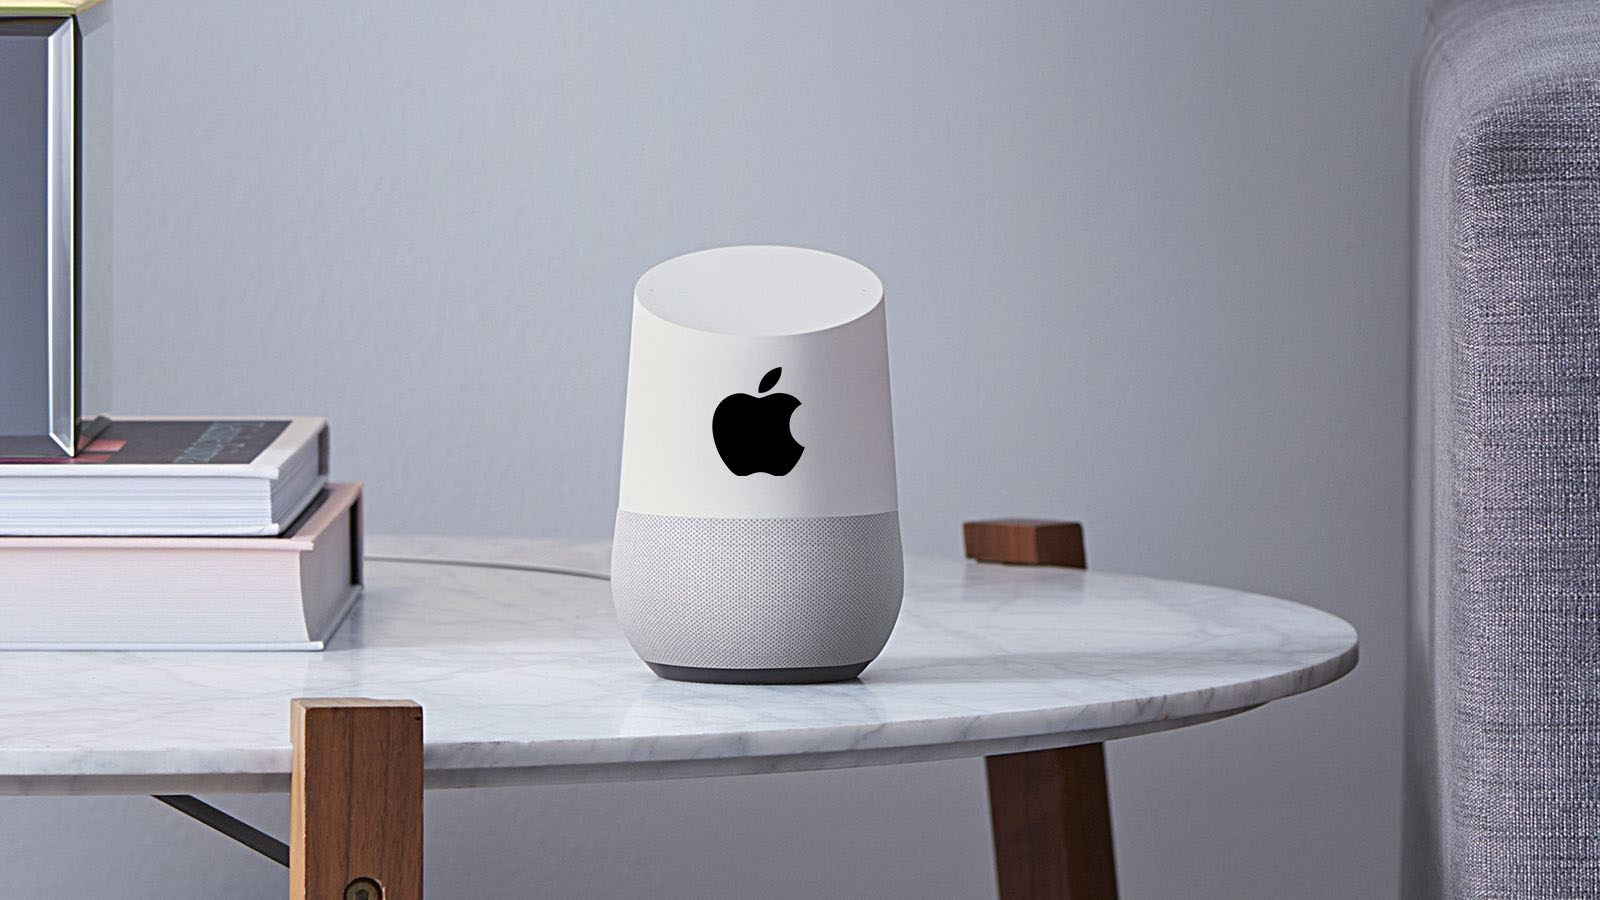 Apple préparerait un concurrent très qualitatif à Google Home et à l'Amazon Echo